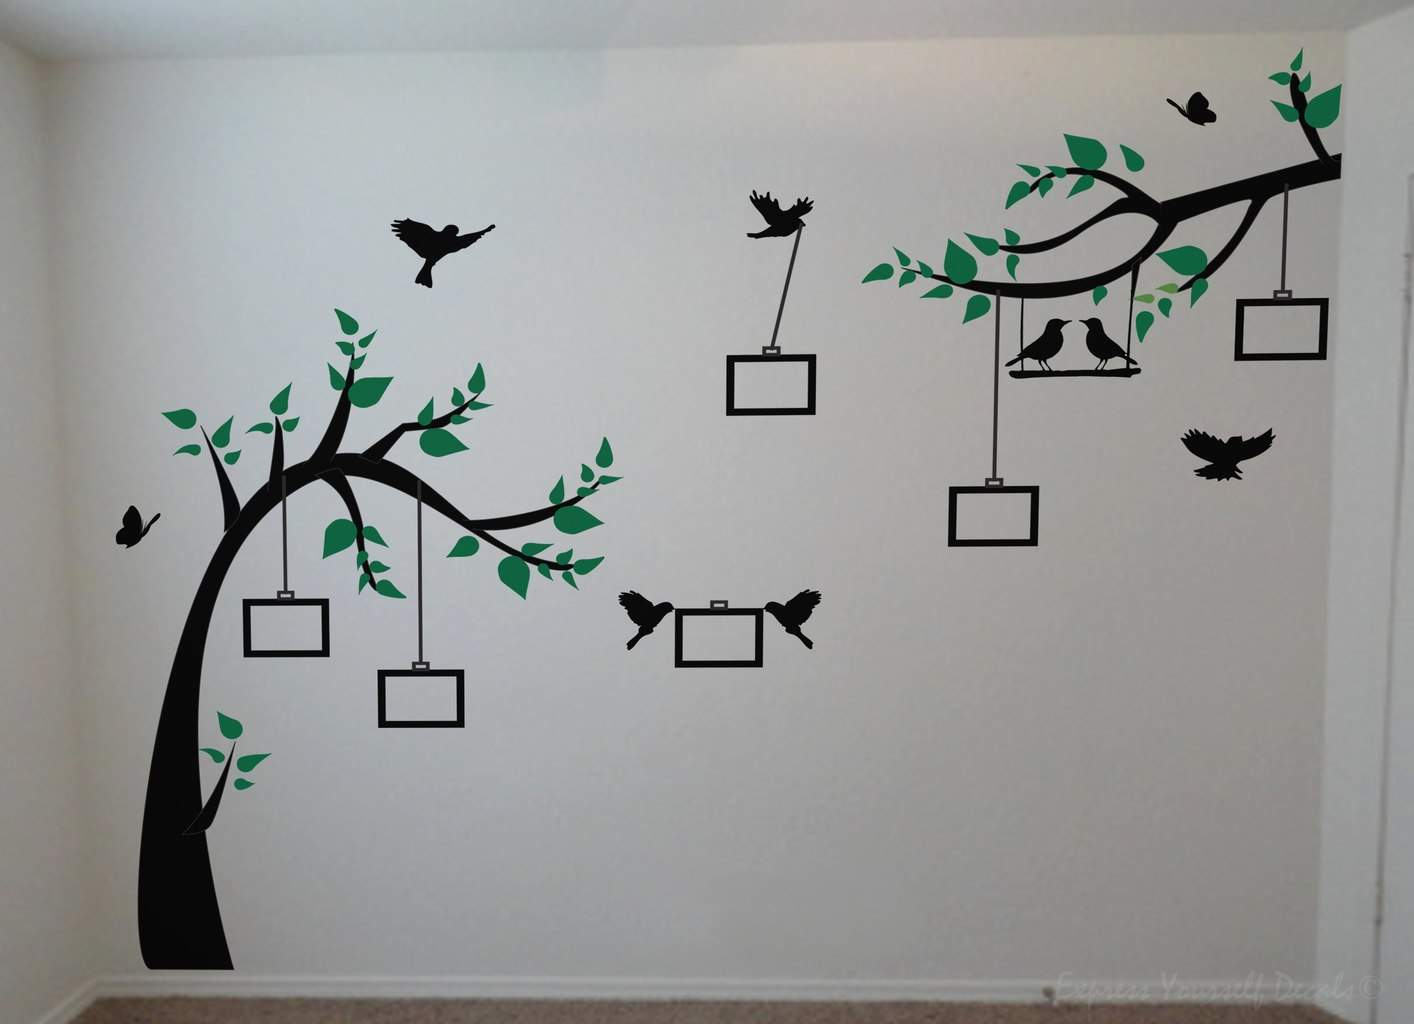 Photo Tree Wall Decal | Wall Art Decal Sticker With Regard To Tree Wall Decor (View 14 of 30)